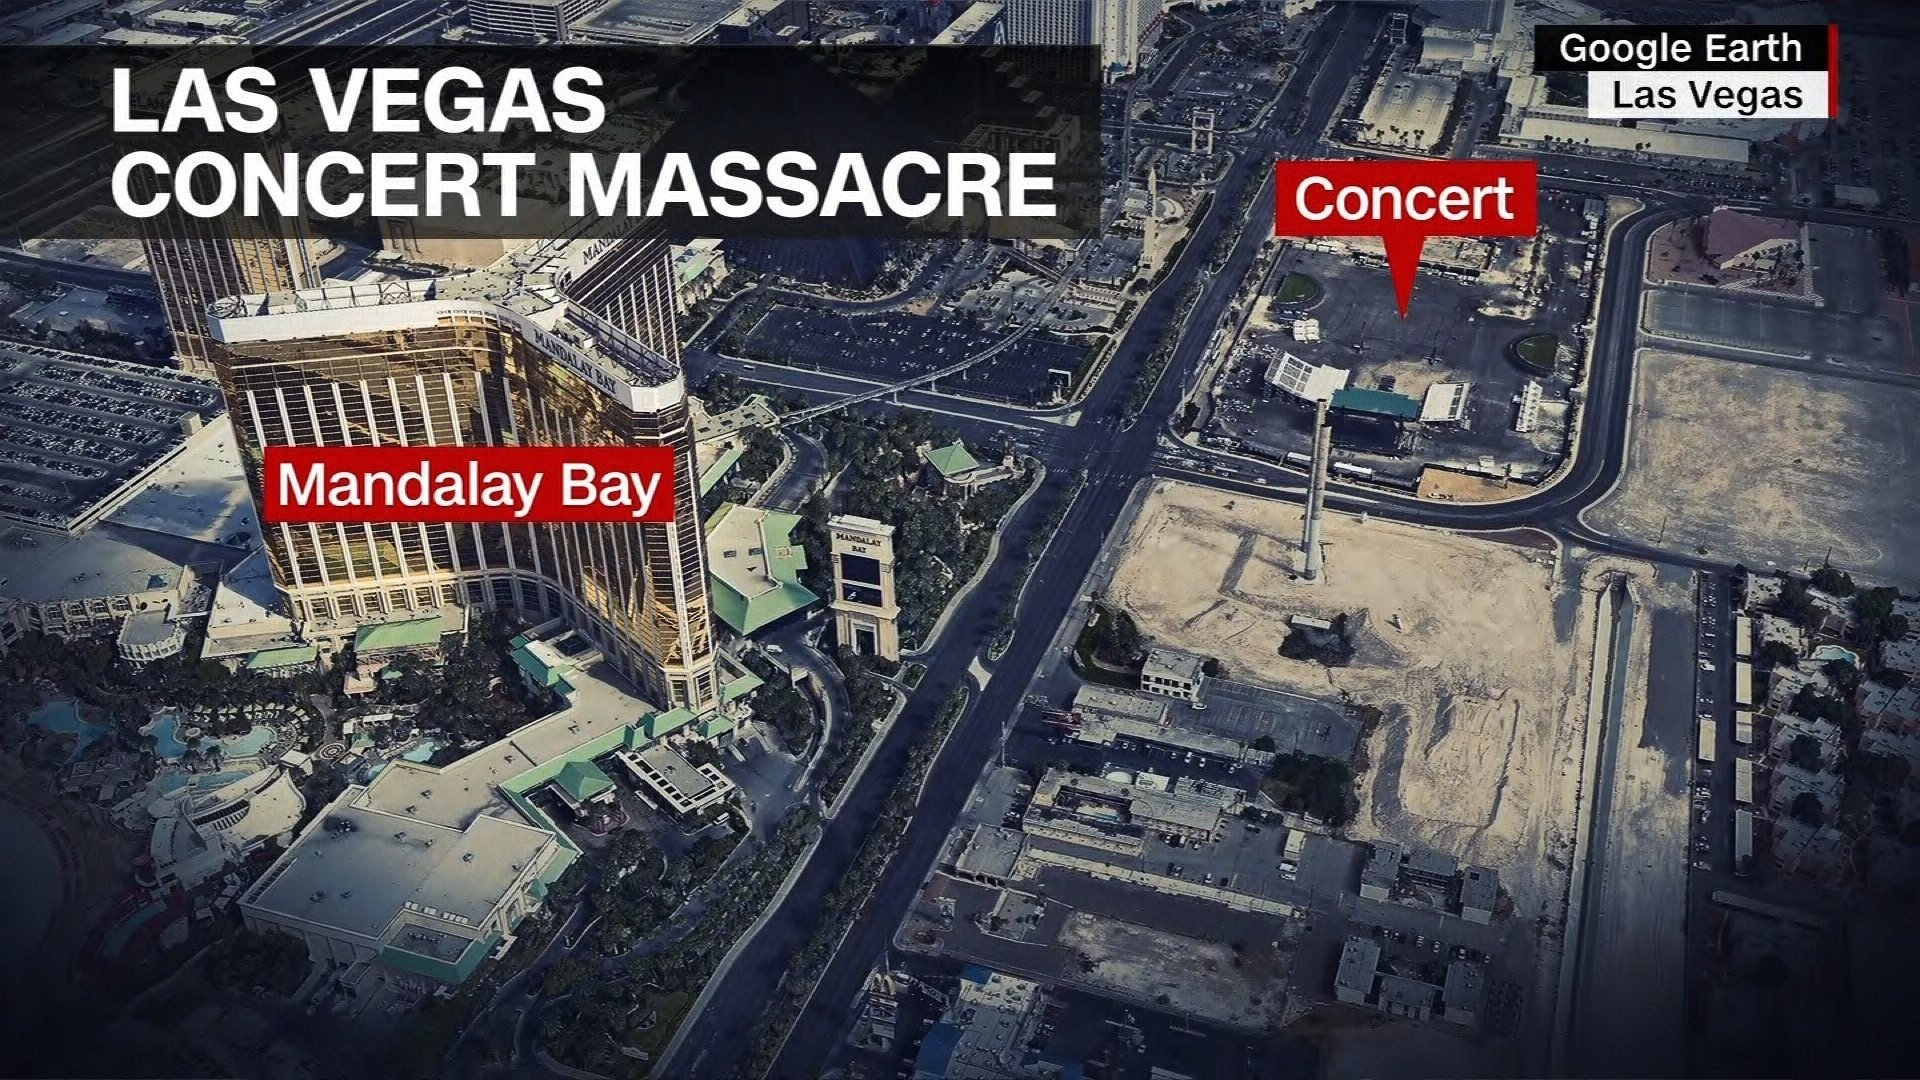 Las Vegas gunman's girlfriend returning to United States to clear name